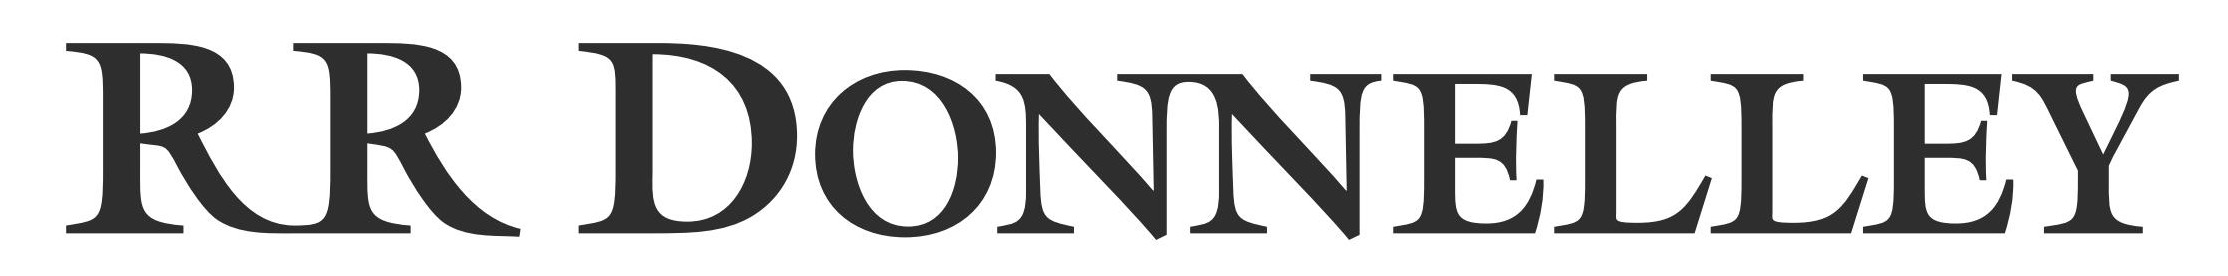 RR Donnelley Logo [EPS File] png